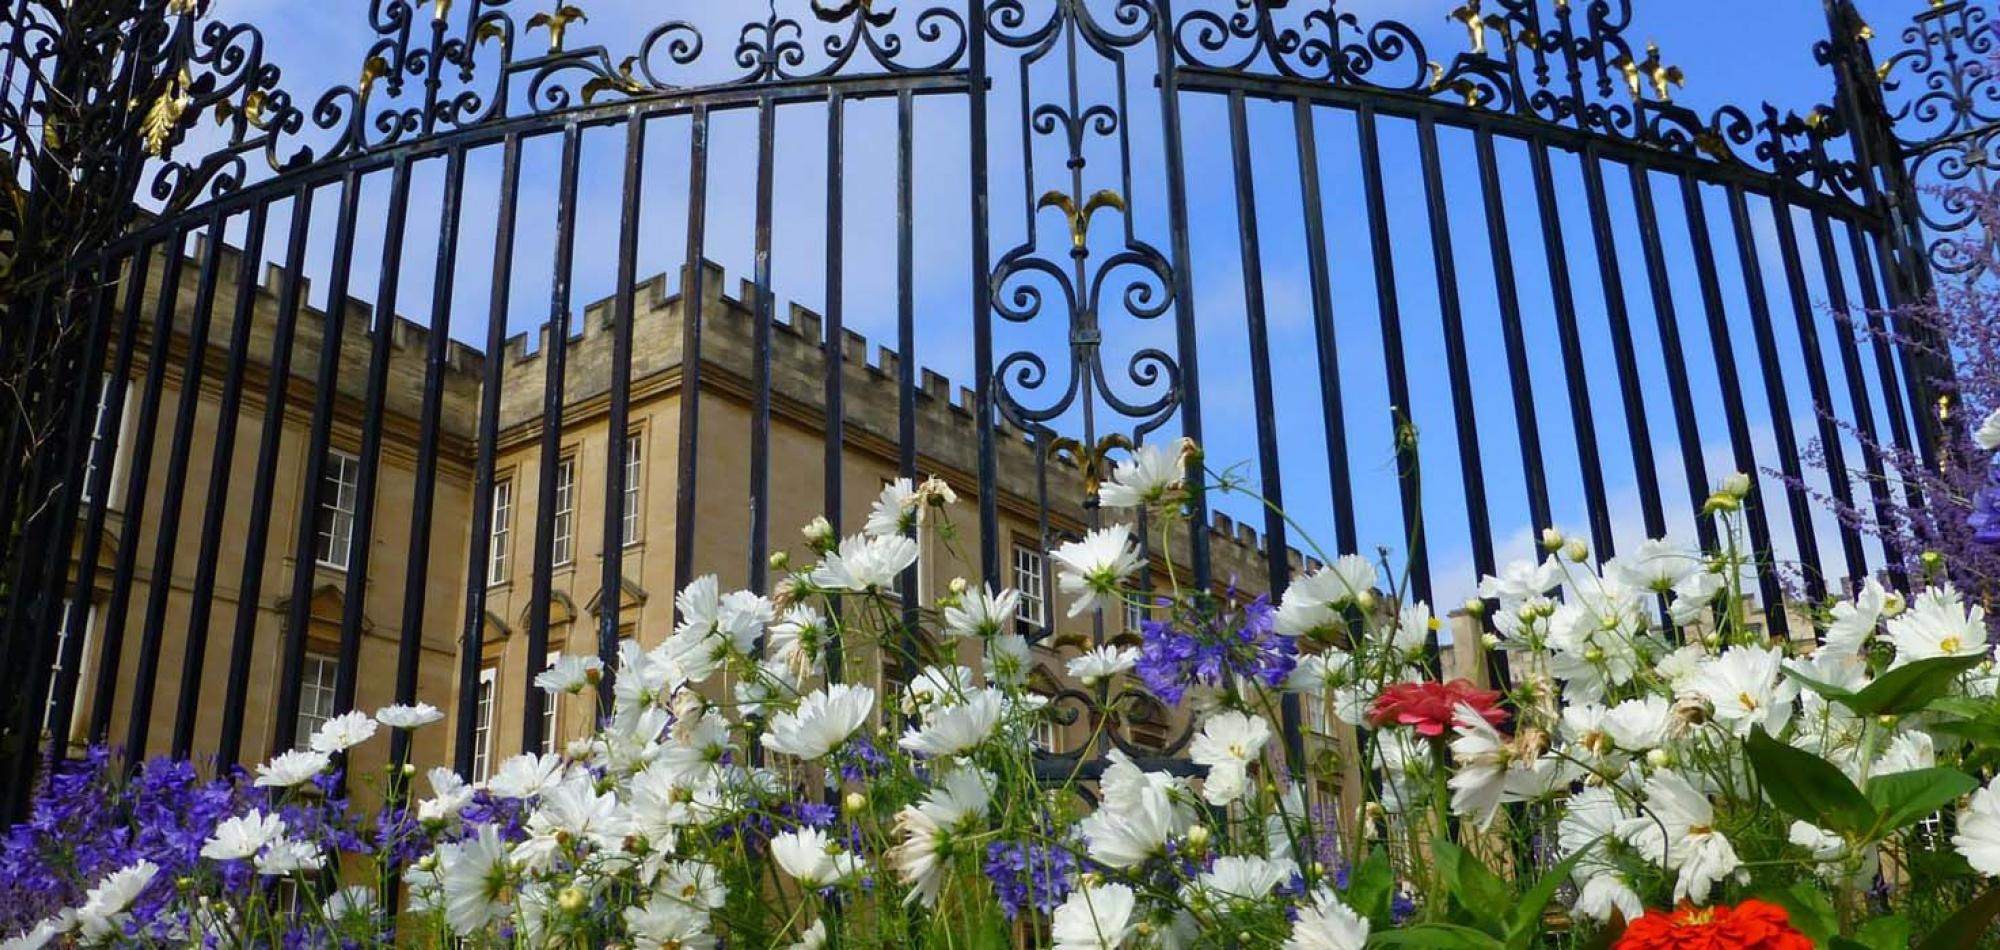 New College Gates with Flowers